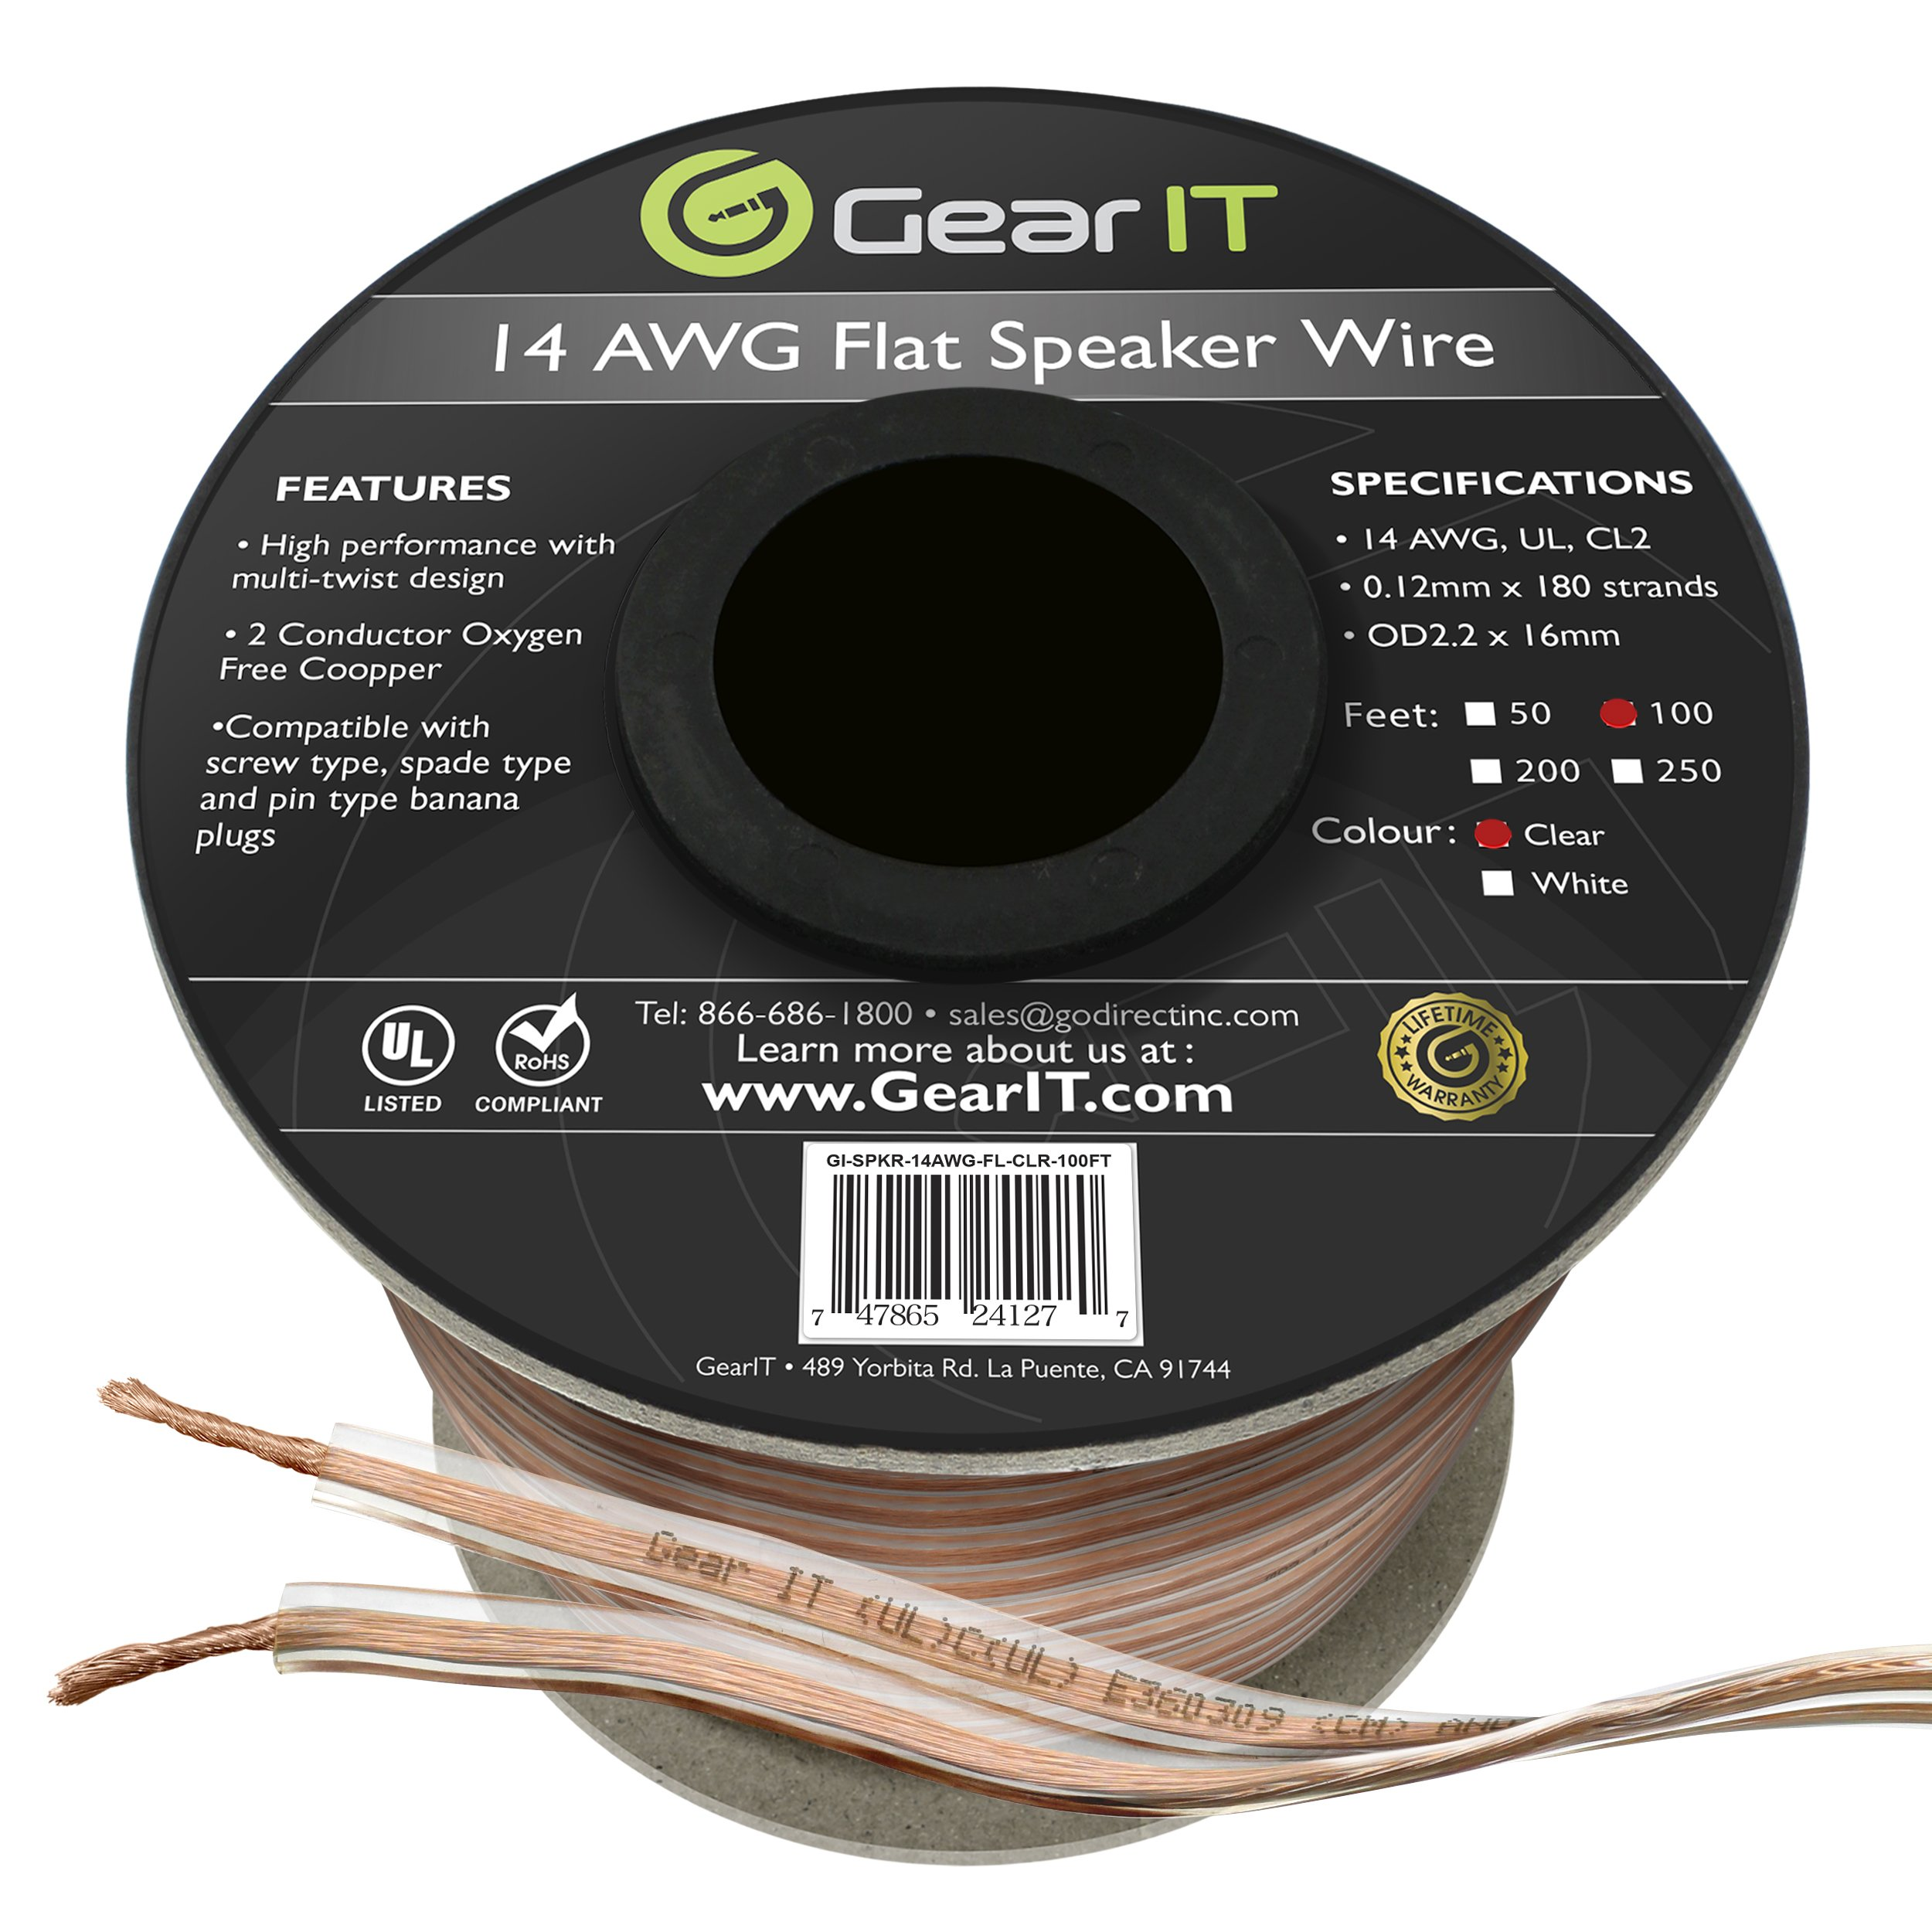 GearIT Elite Series 14AWG Flat Speaker Wire (100 Feet / 30.4 Meters) - Oxygen Free Copper (OFC) CL2 Rated In-Wall Installation for Home Theater, Car Audio, and Outdoor Use, Clear